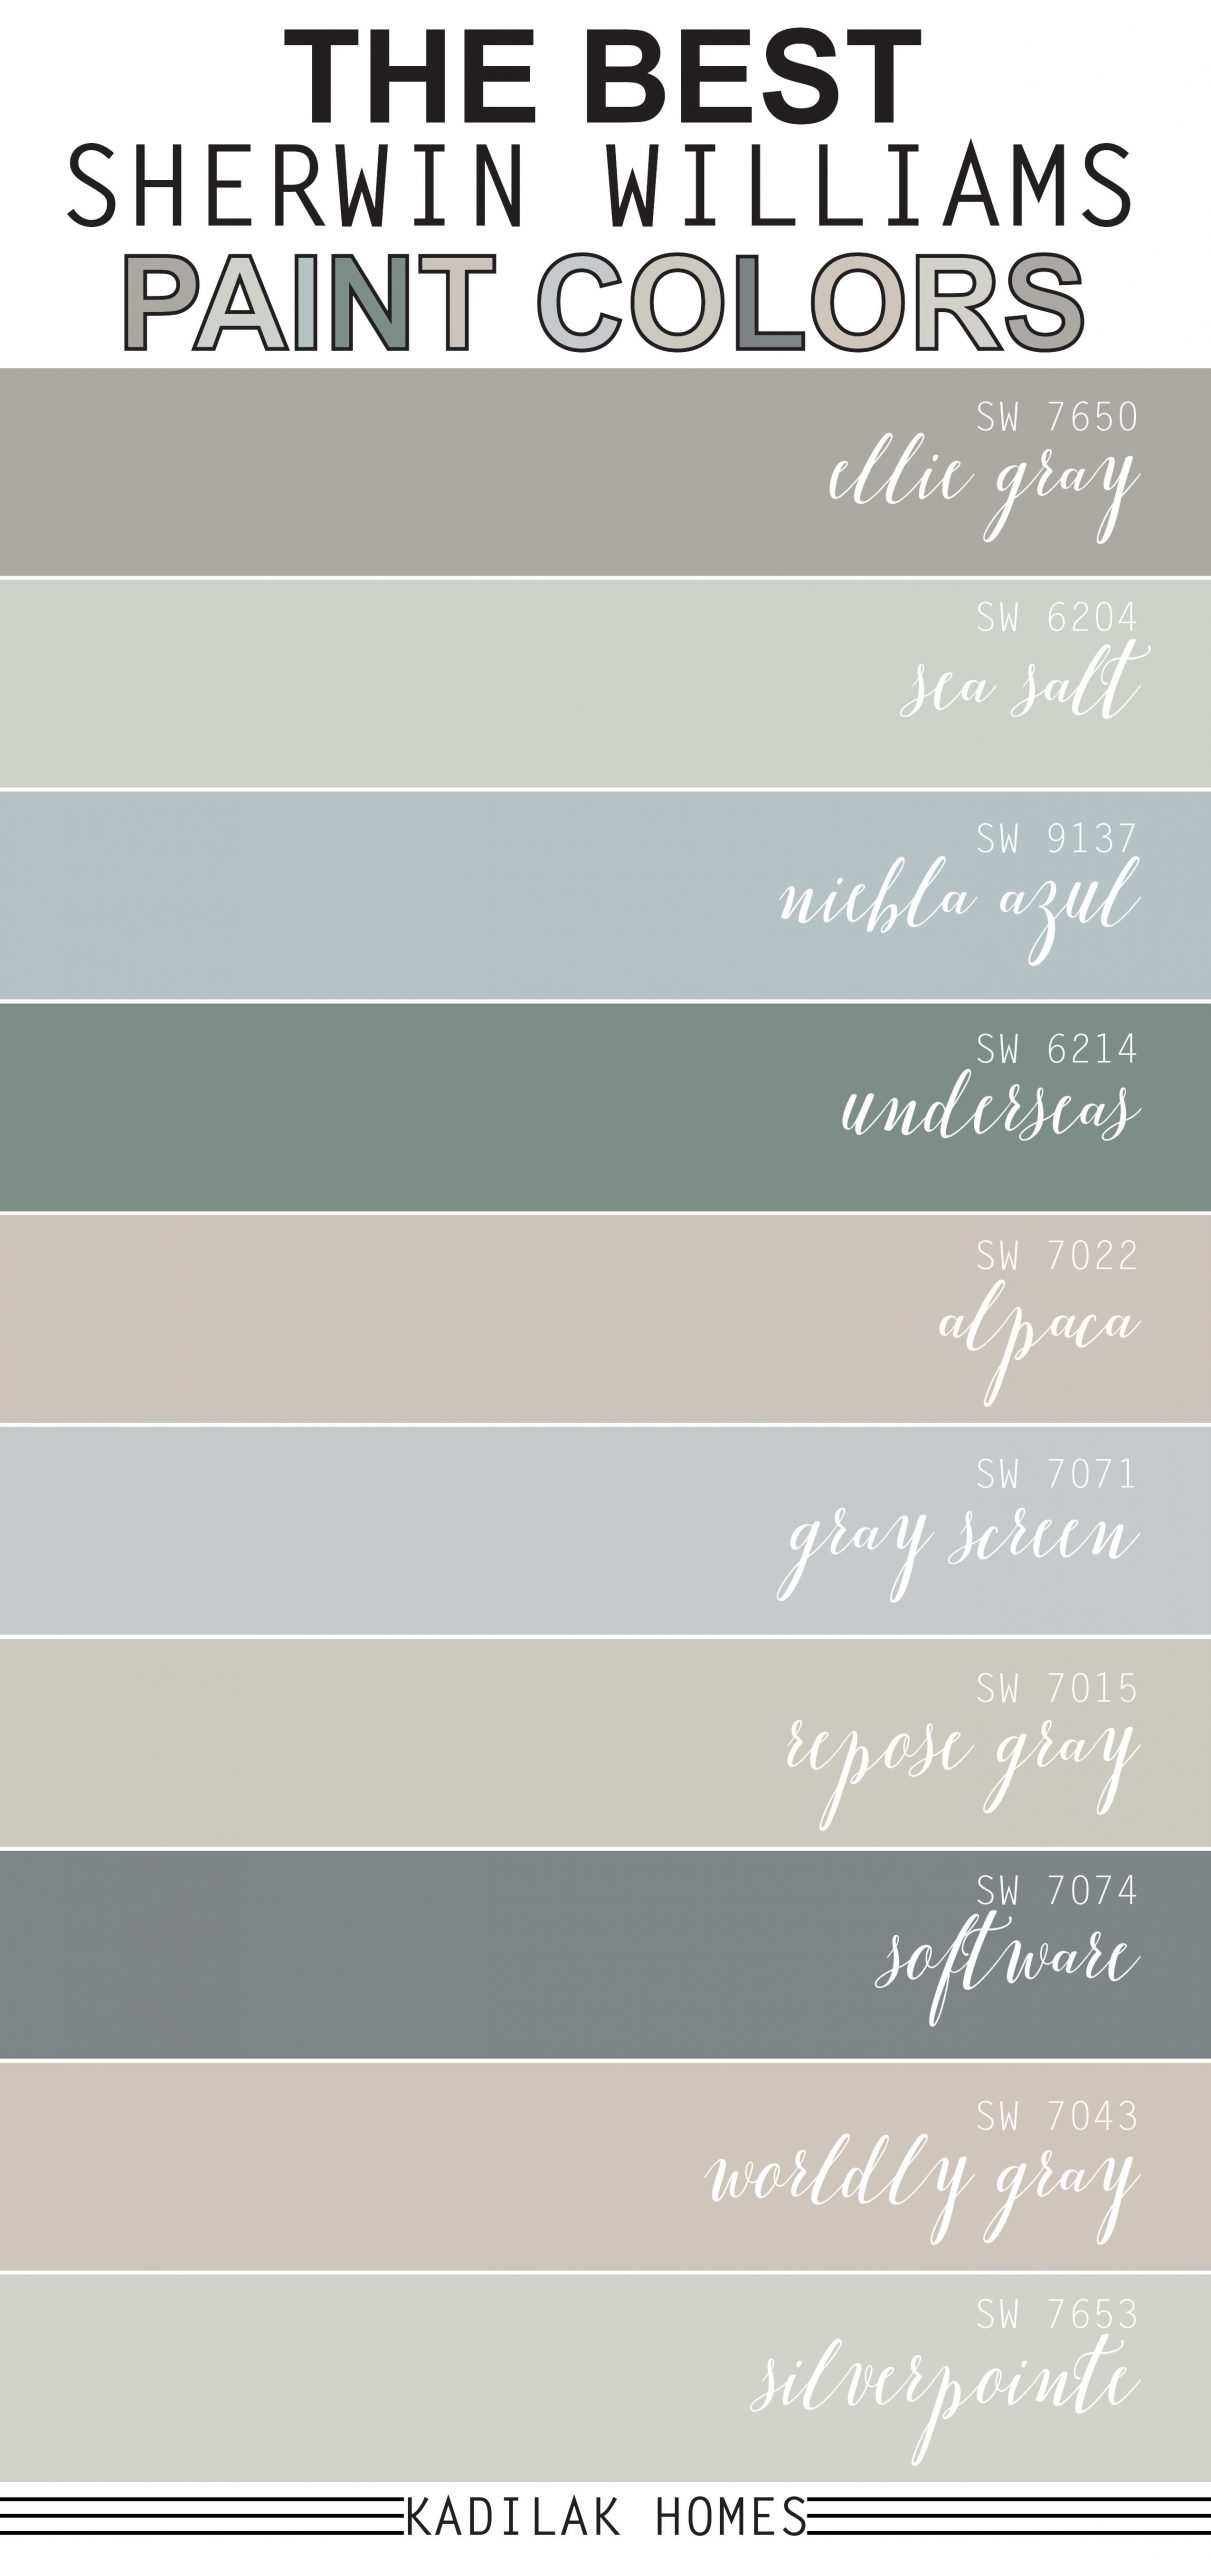 The Best Sherwin Williams Paint Colors